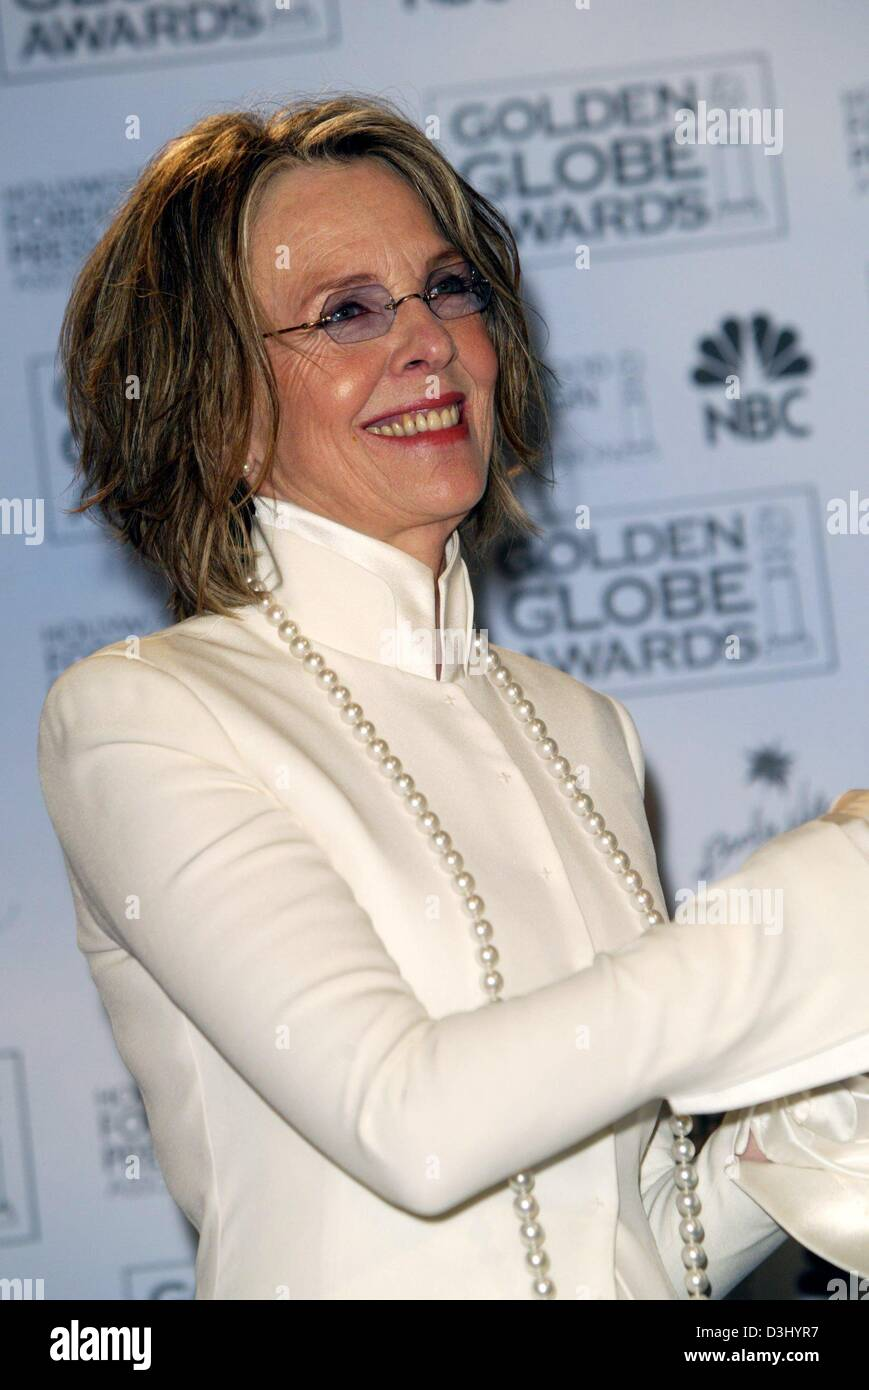 (dpa) - US actress Diane Keaton smiles as she poses after the Golden Globe Awards in Beverly Hills, USA, 25 January - Stock Image